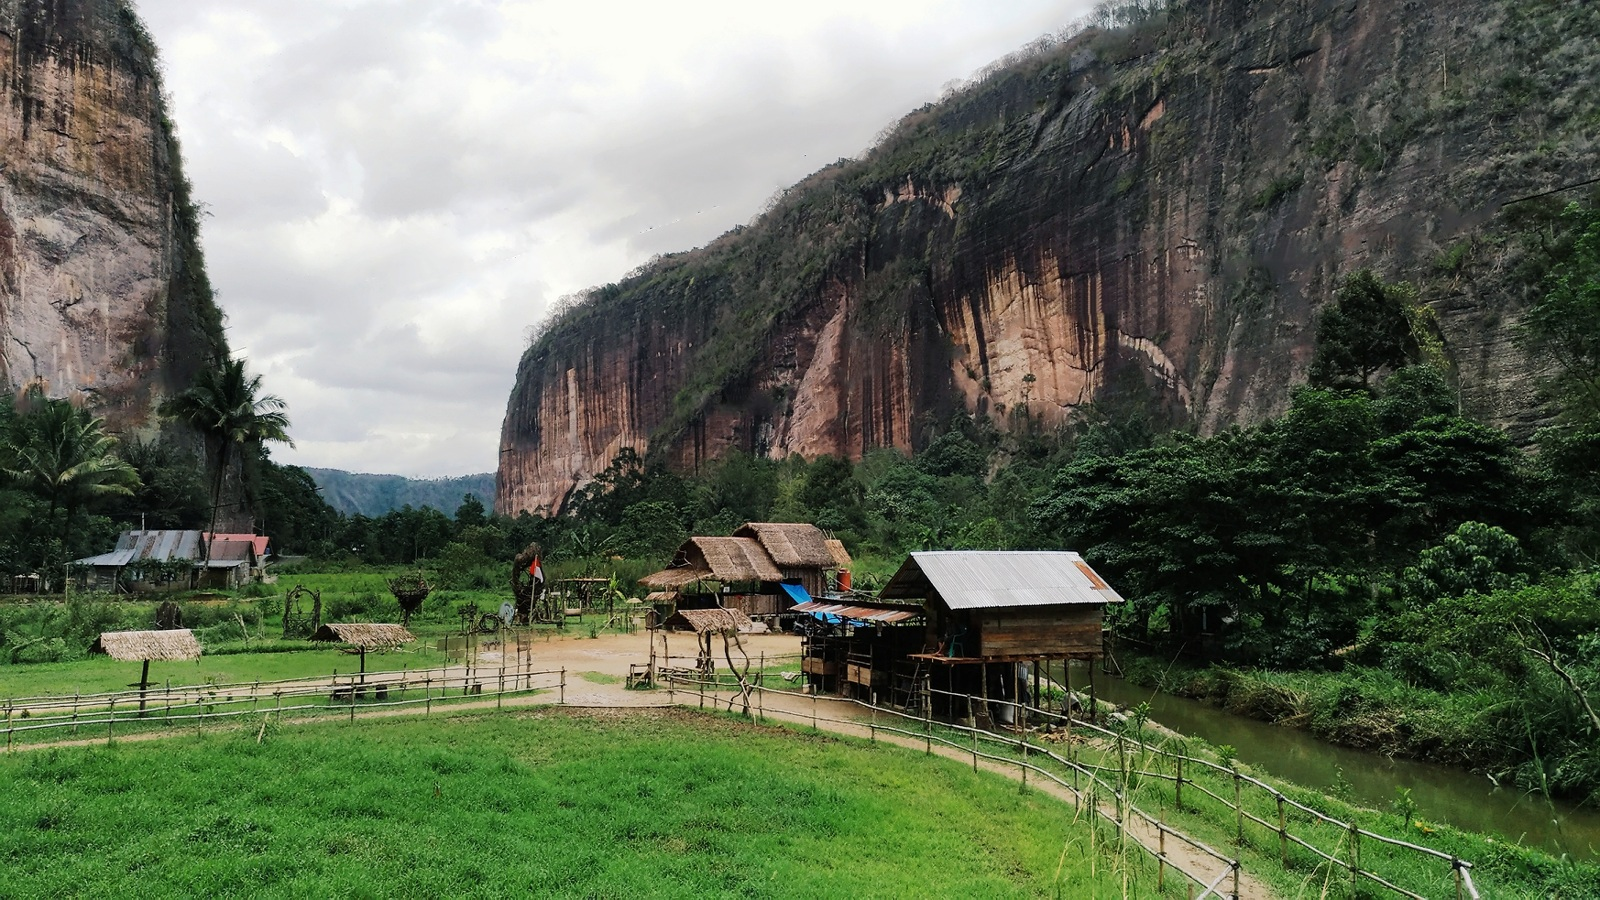 harau hill is surrounded by colorful steep granite stones